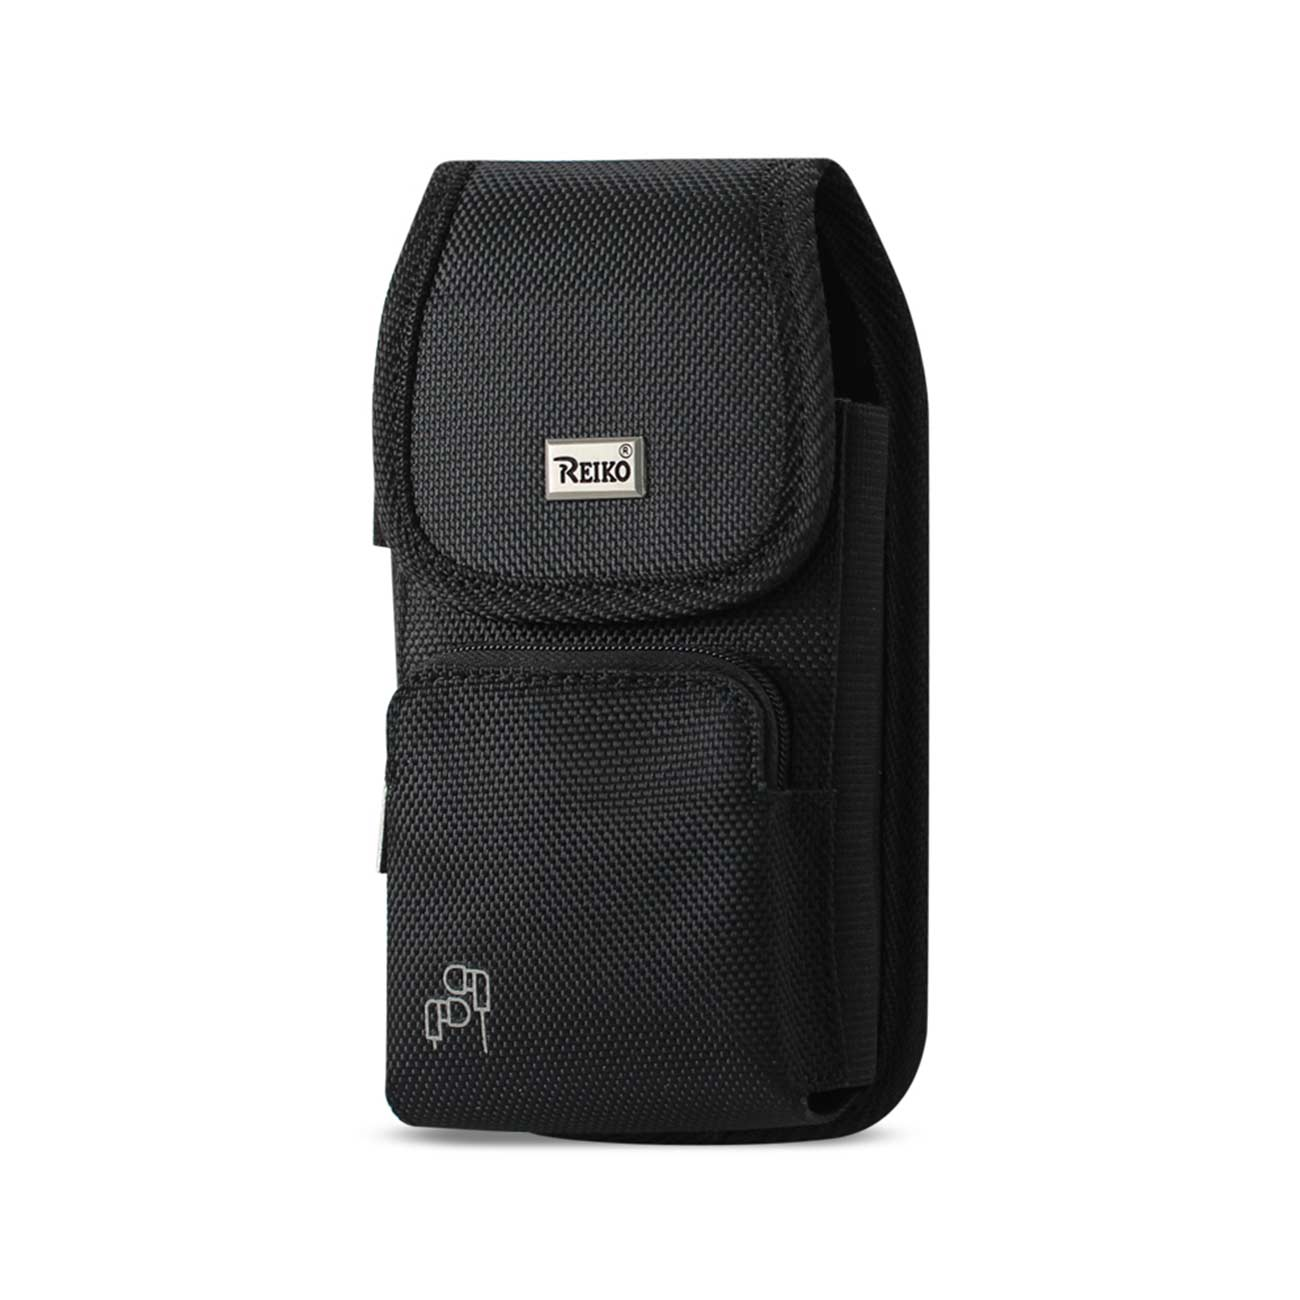 Vertical Rugged Pouch With Z Lid Pattern In Black (5.8X3.2X0.7 Inches)